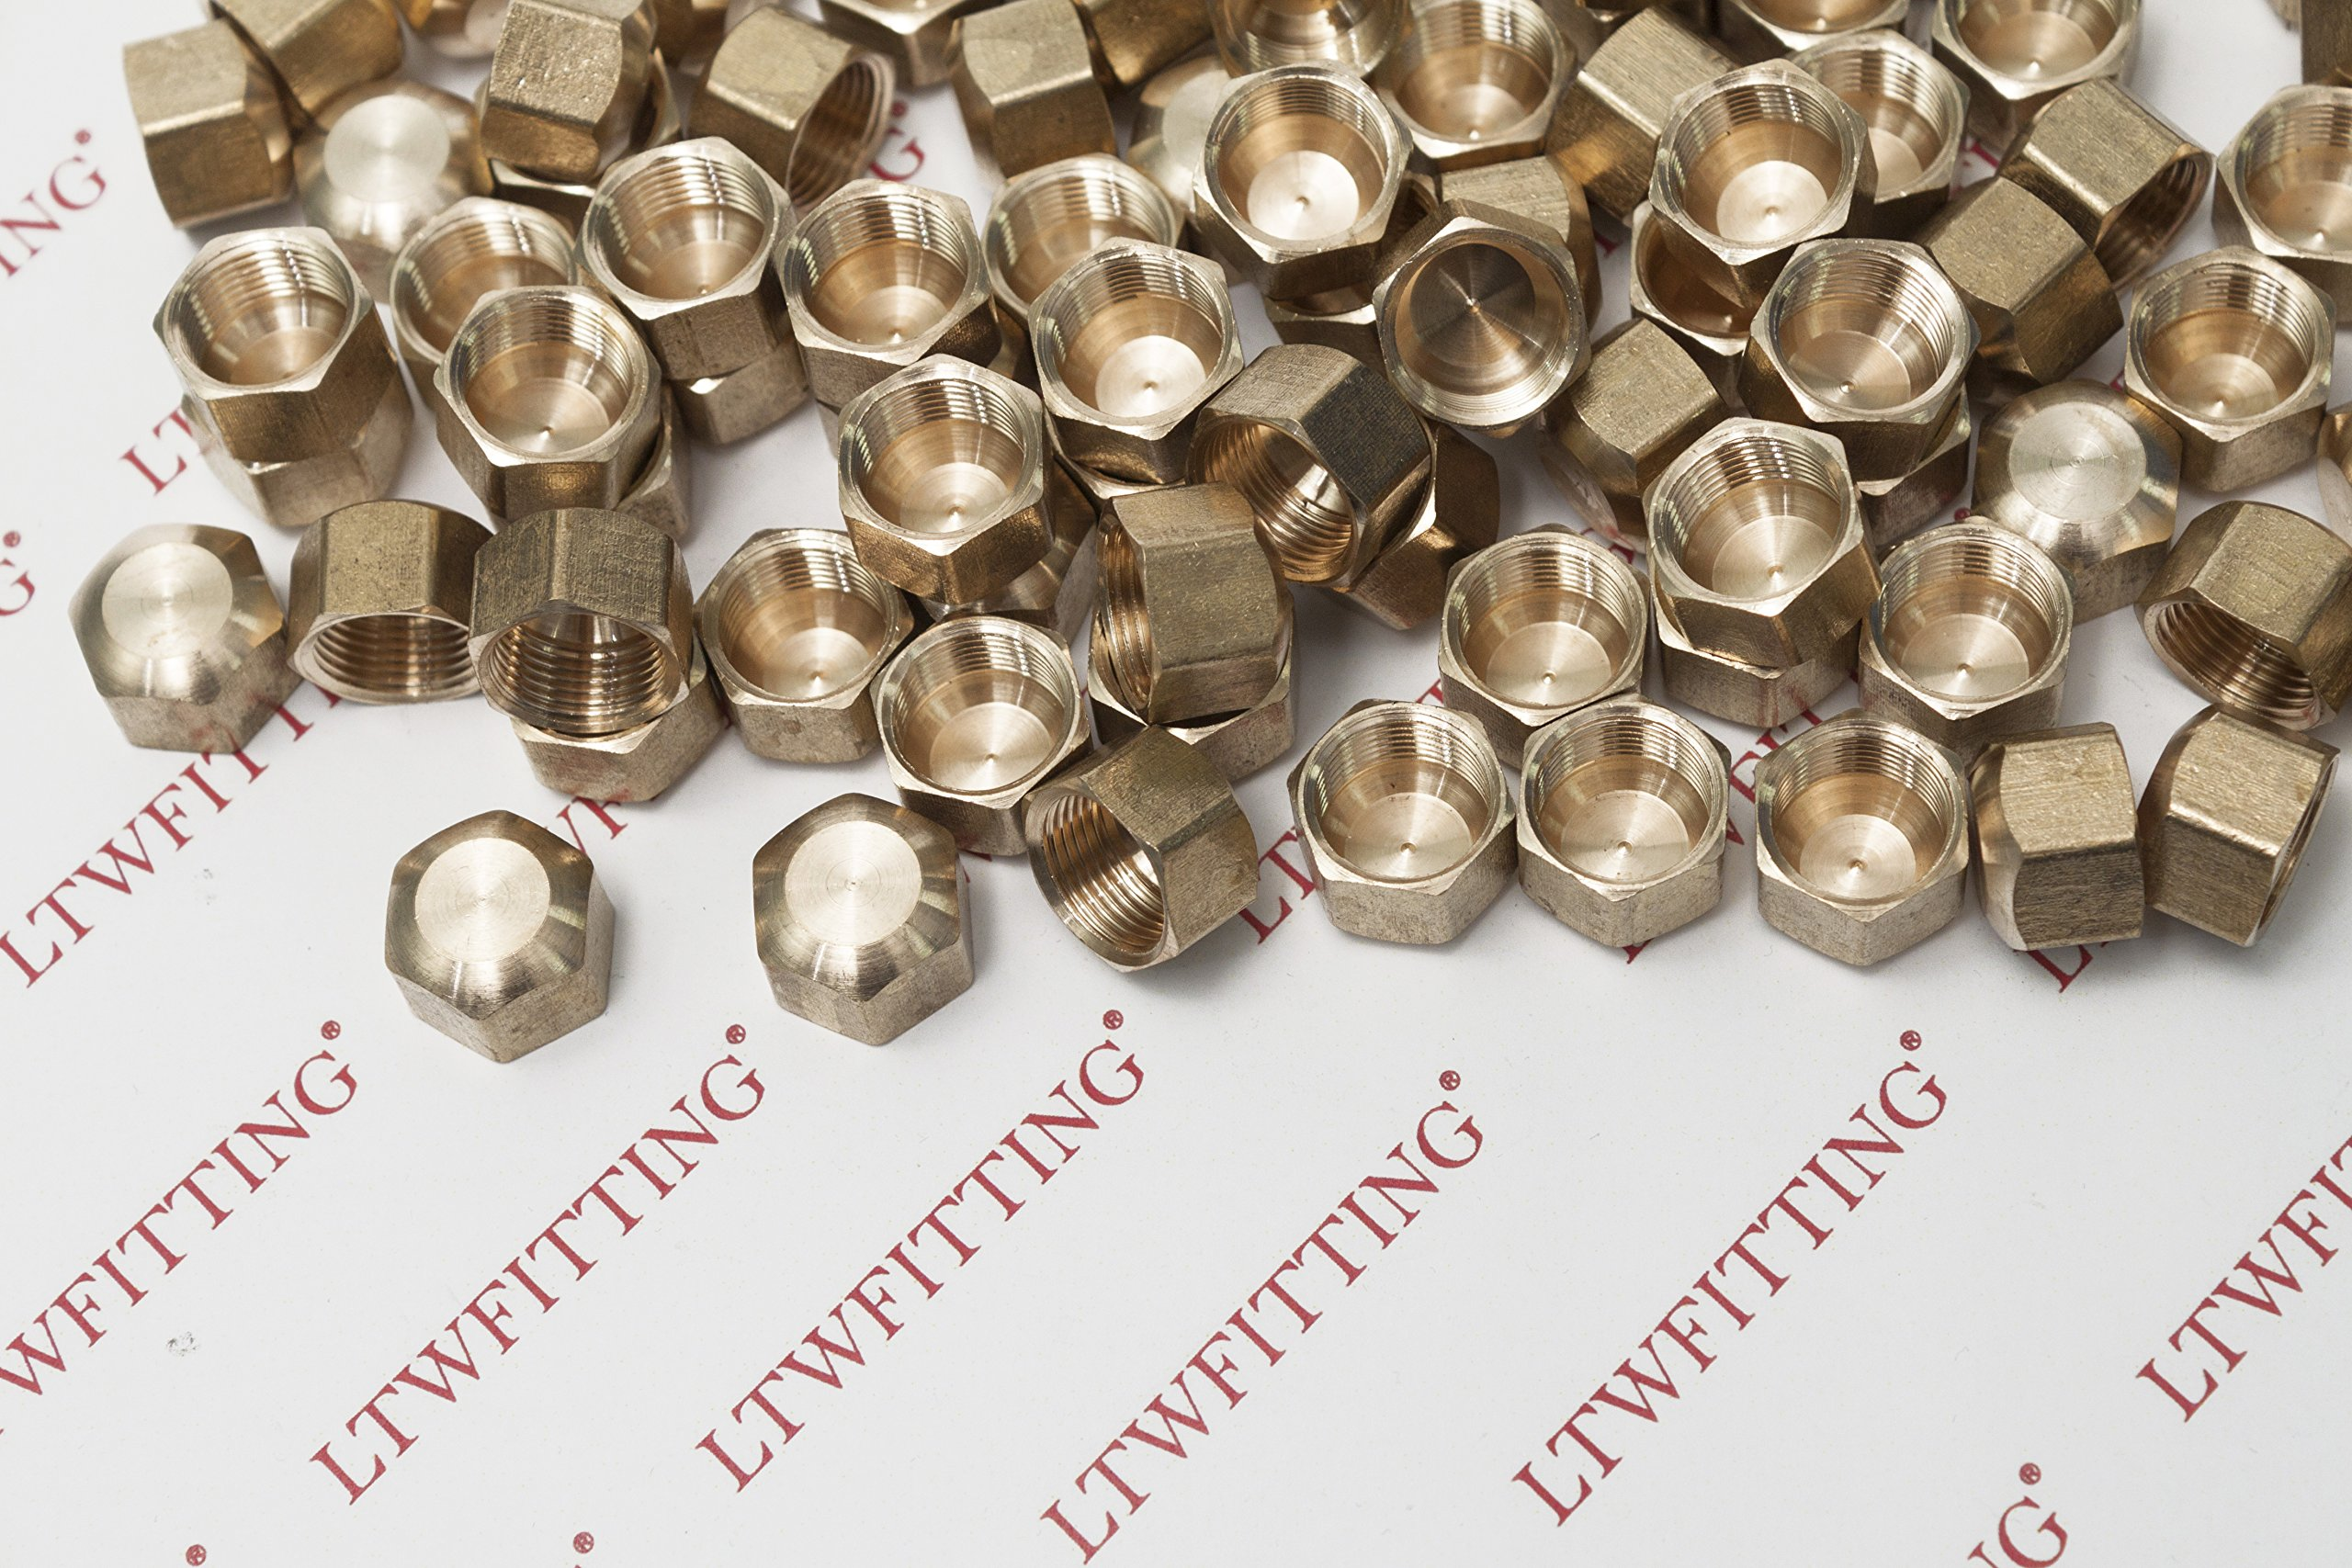 LTWFITTING 3/8'' Brass Compression Cap Stop Valve Cap,BRASS COMPRESSION FITTING(Pack of 60) by LTWFITTING (Image #2)